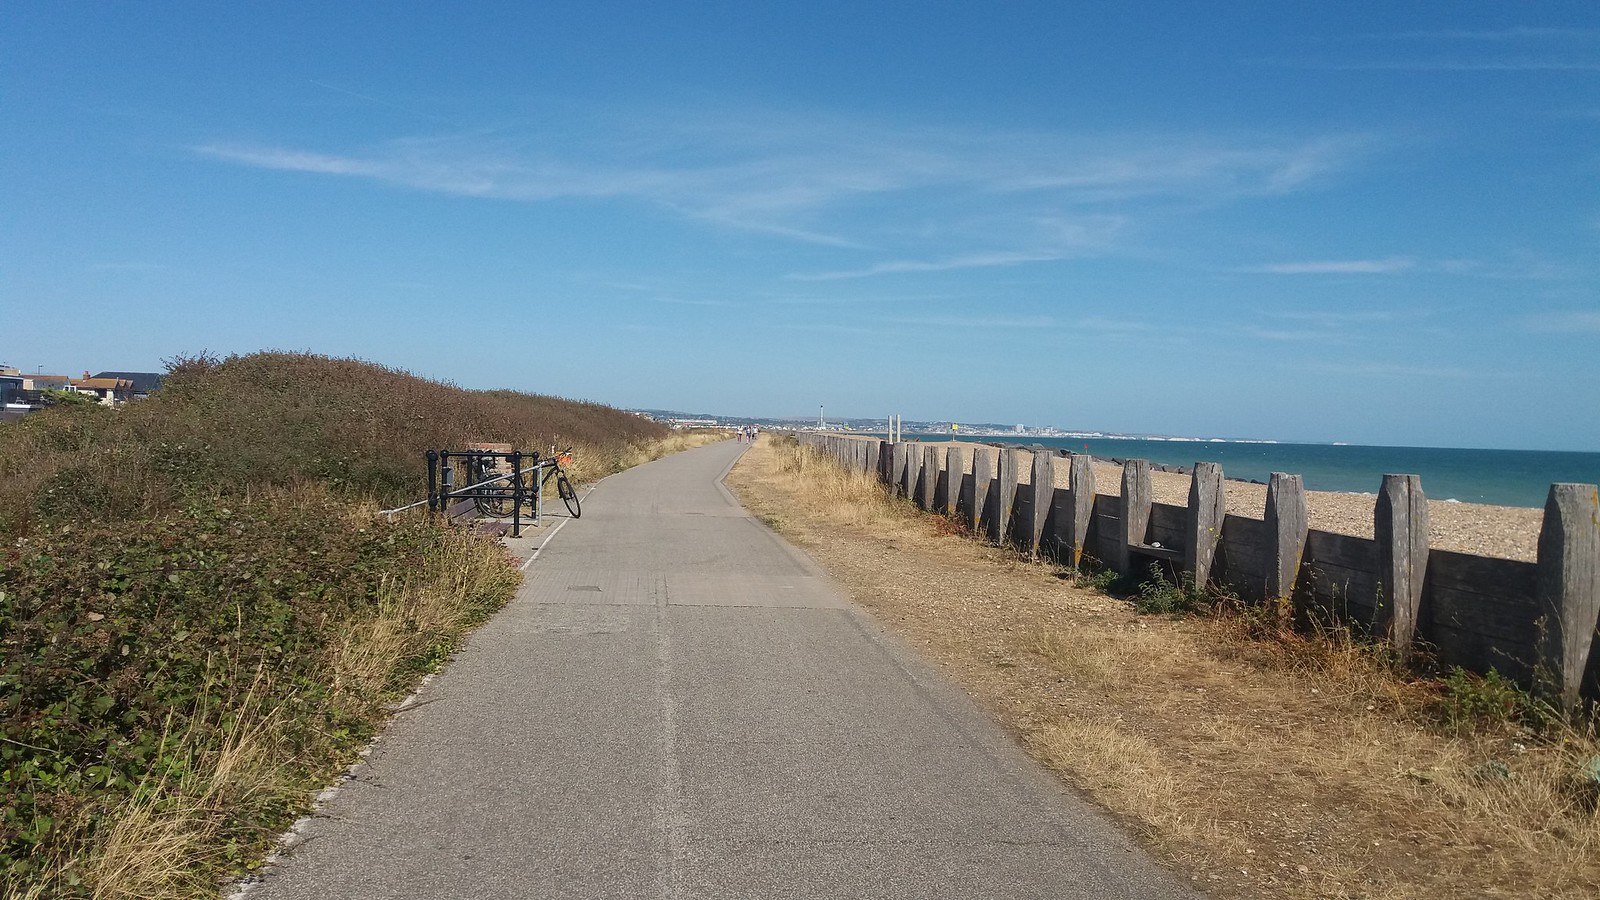 20180801_155751 Lancing seafront path past the lagoon